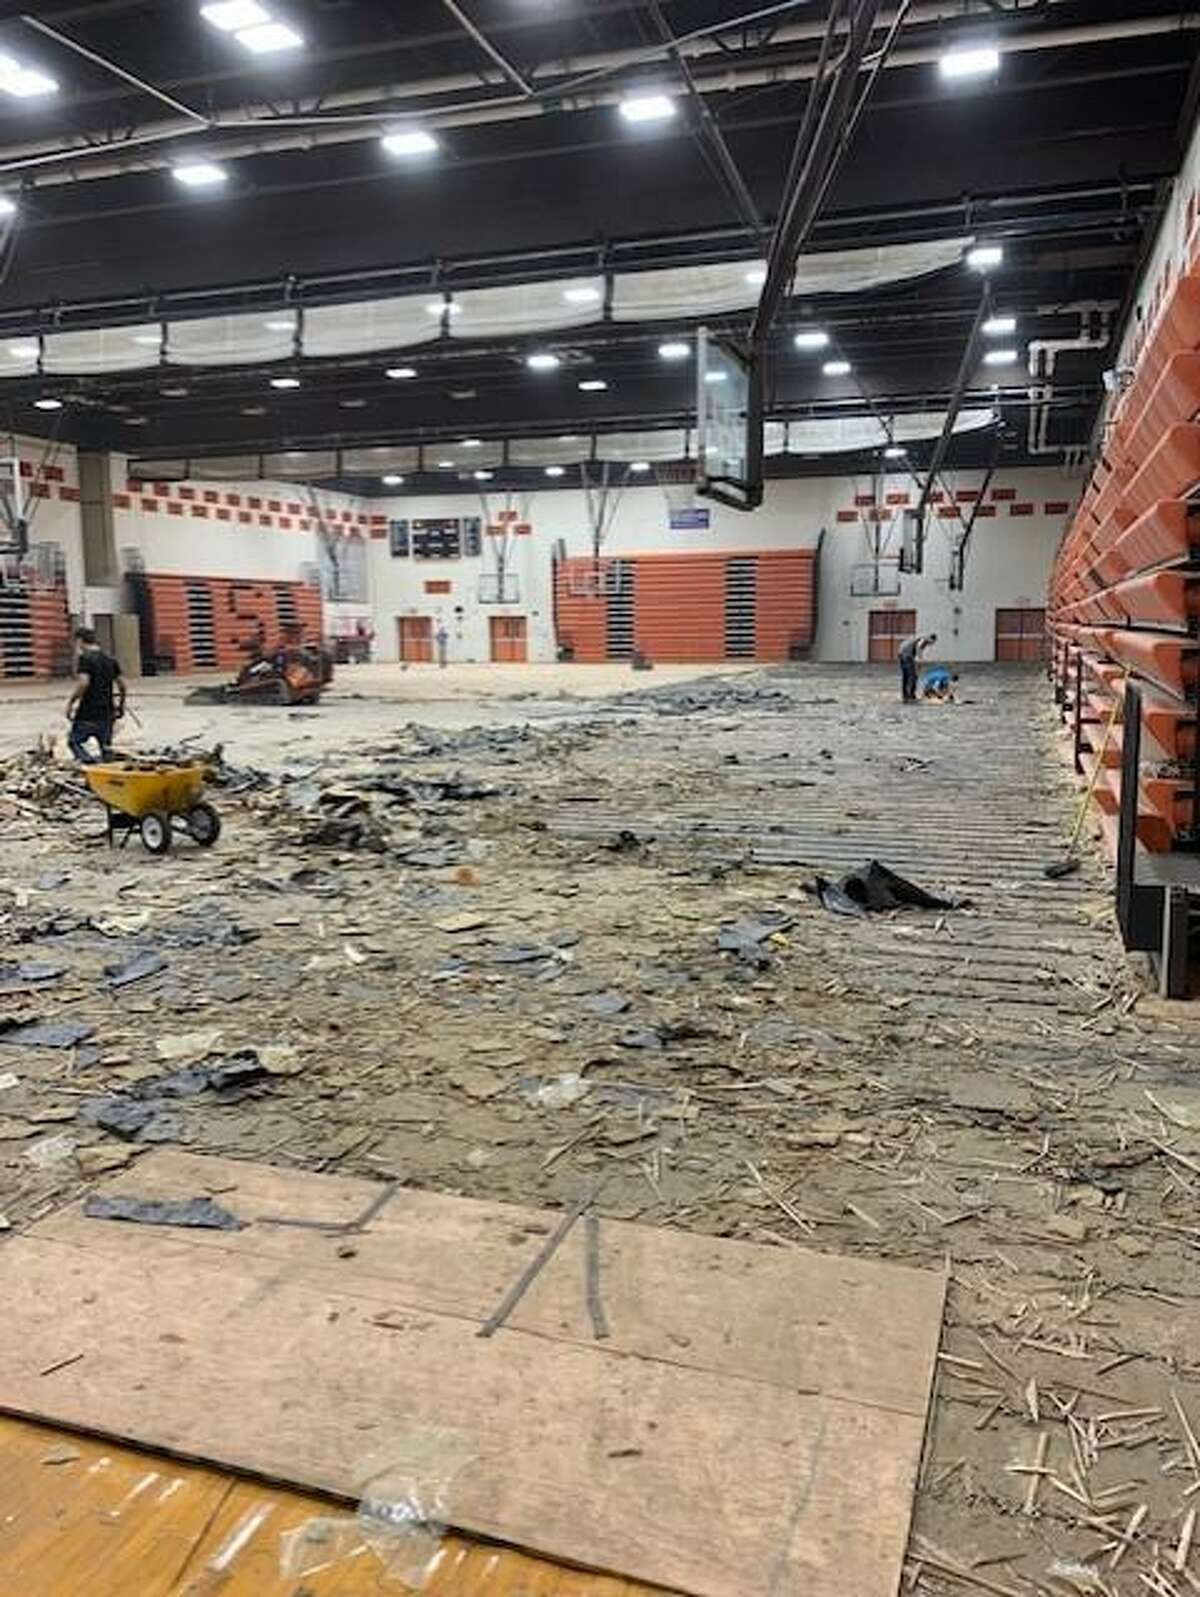 The Shelton High gym floor, damaged after an accident in April, is being removed this week. The floor will be replaced with new wood. The gym is closed during the work, and there is no timetable for completion.